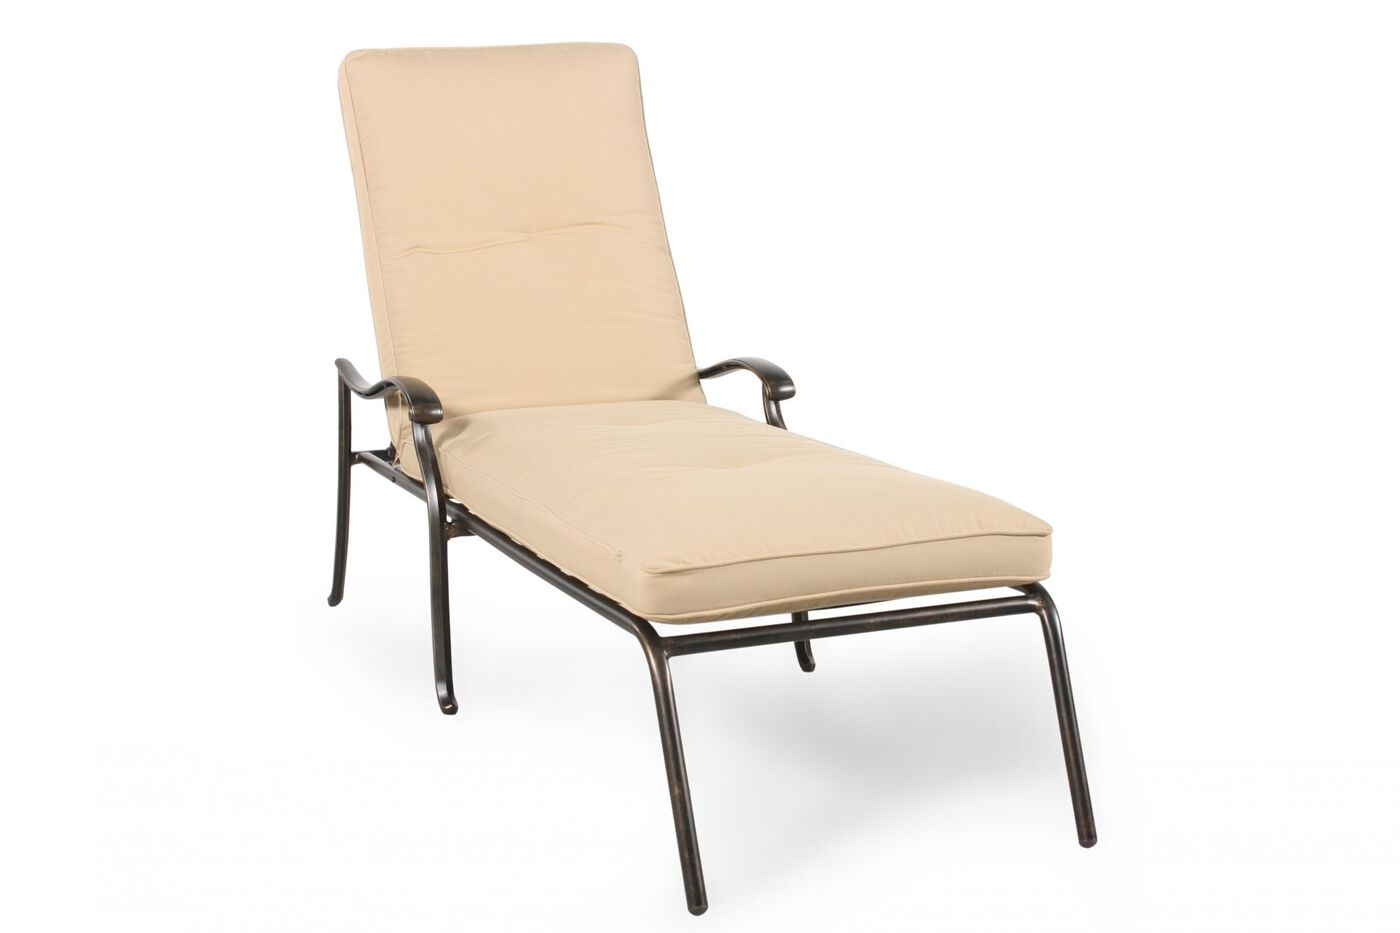 agio heritage select patio chaise lounge mathis brothers